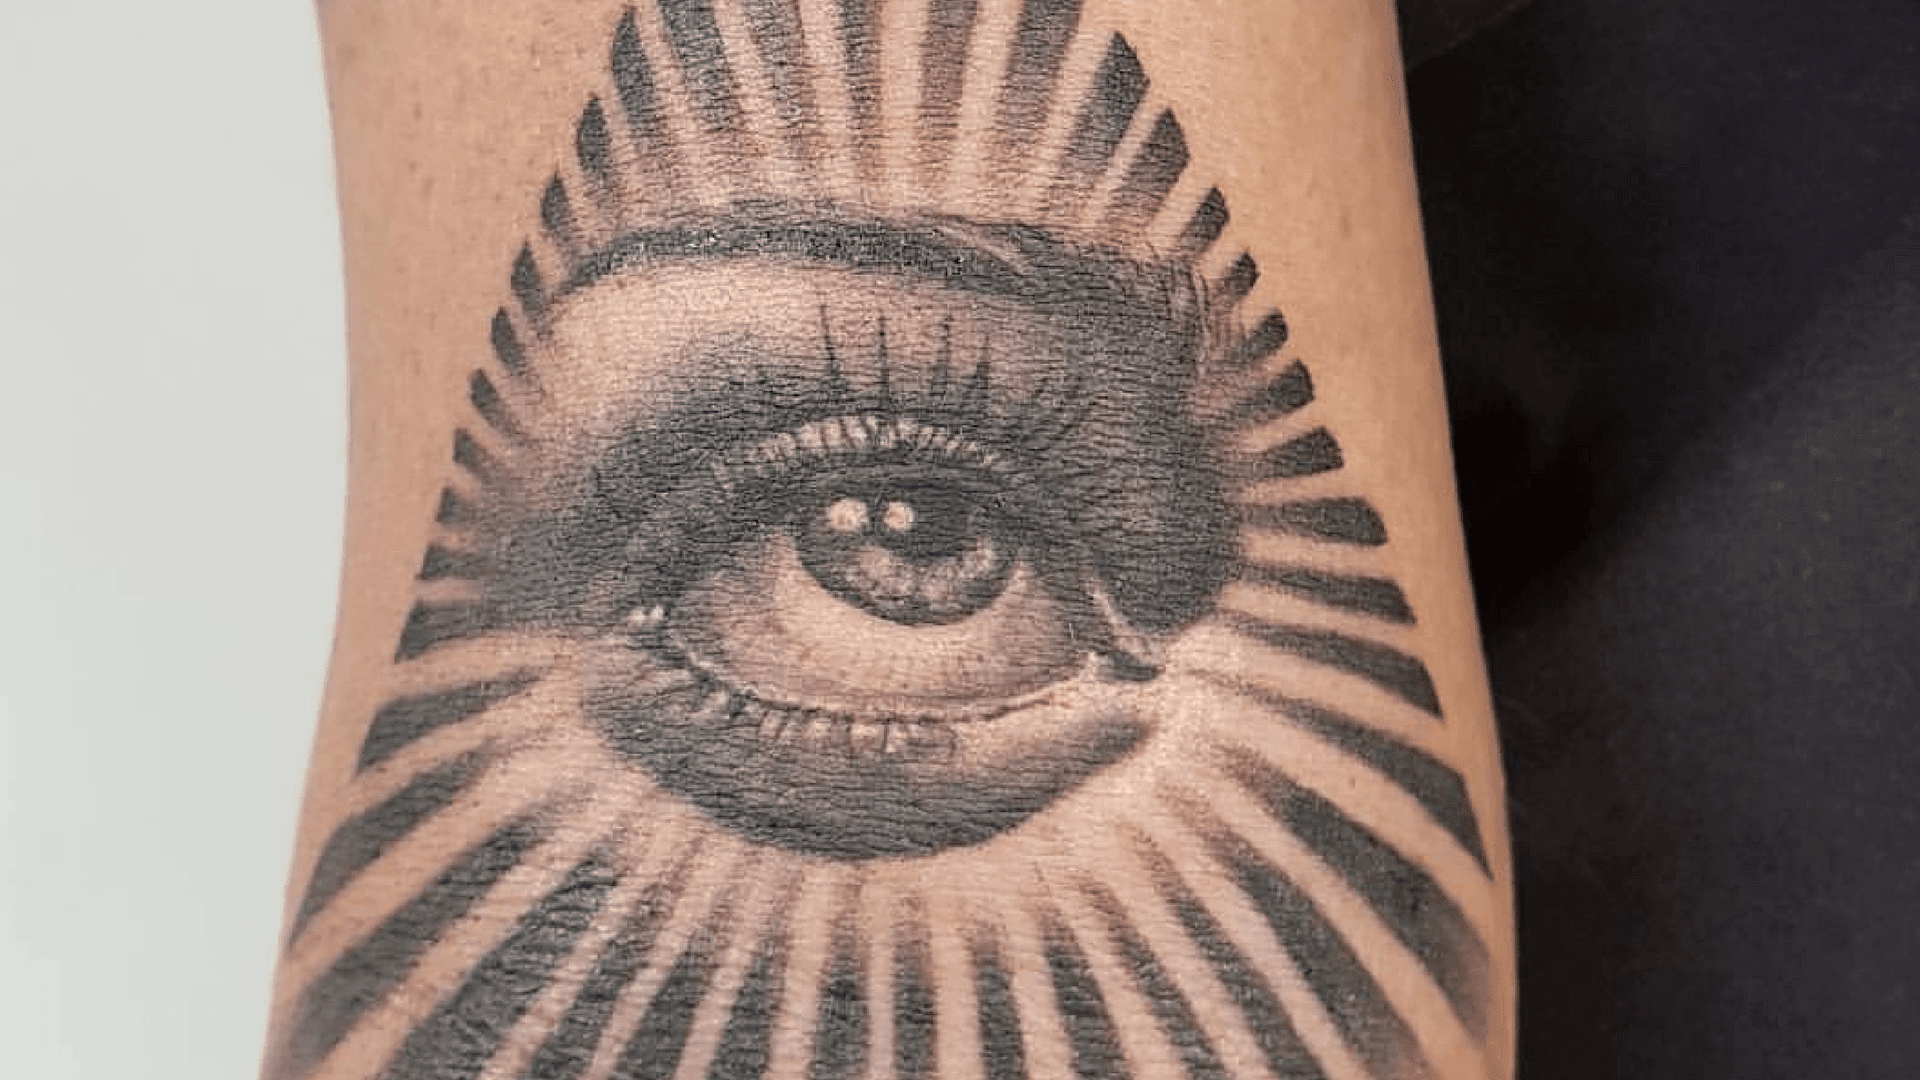 10 Top Tattoo Parlours In Johannesburg After you click on one of the map pins you will be given more information on the good tattoo parlors located near you, including the address, how many stars they have, directions from your location and a save button. 10 top tattoo parlours in johannesburg